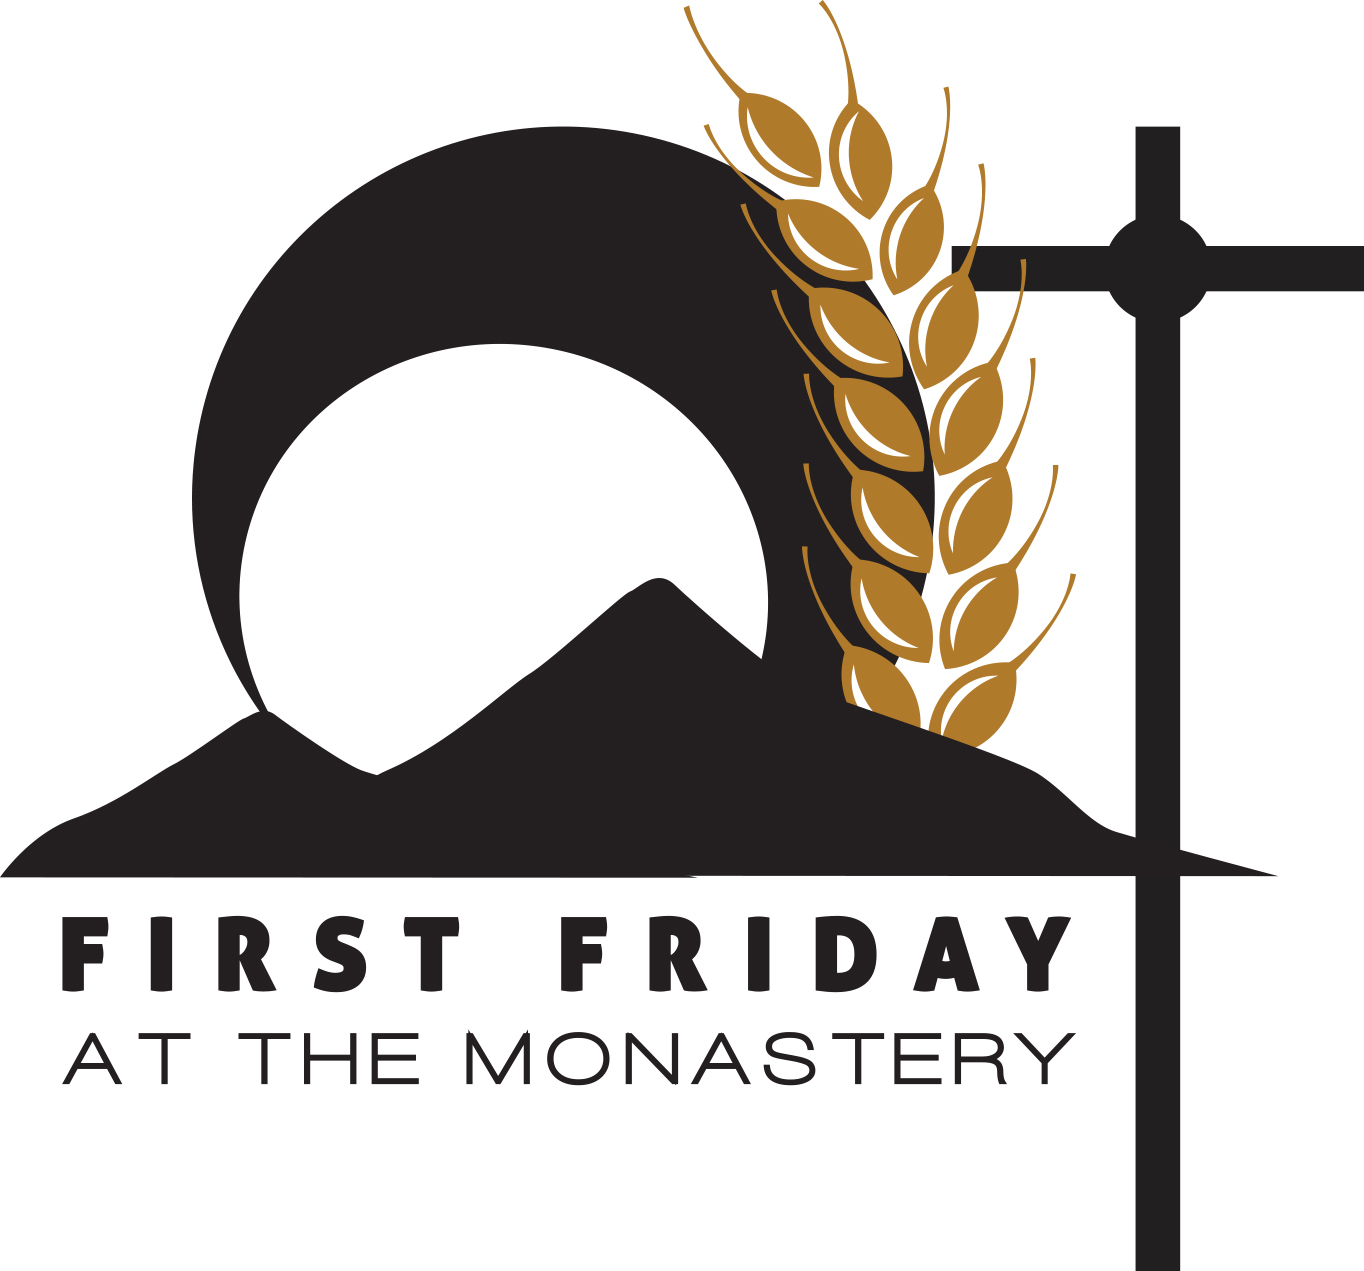 First Friday at the Monastery - SEPT 2016